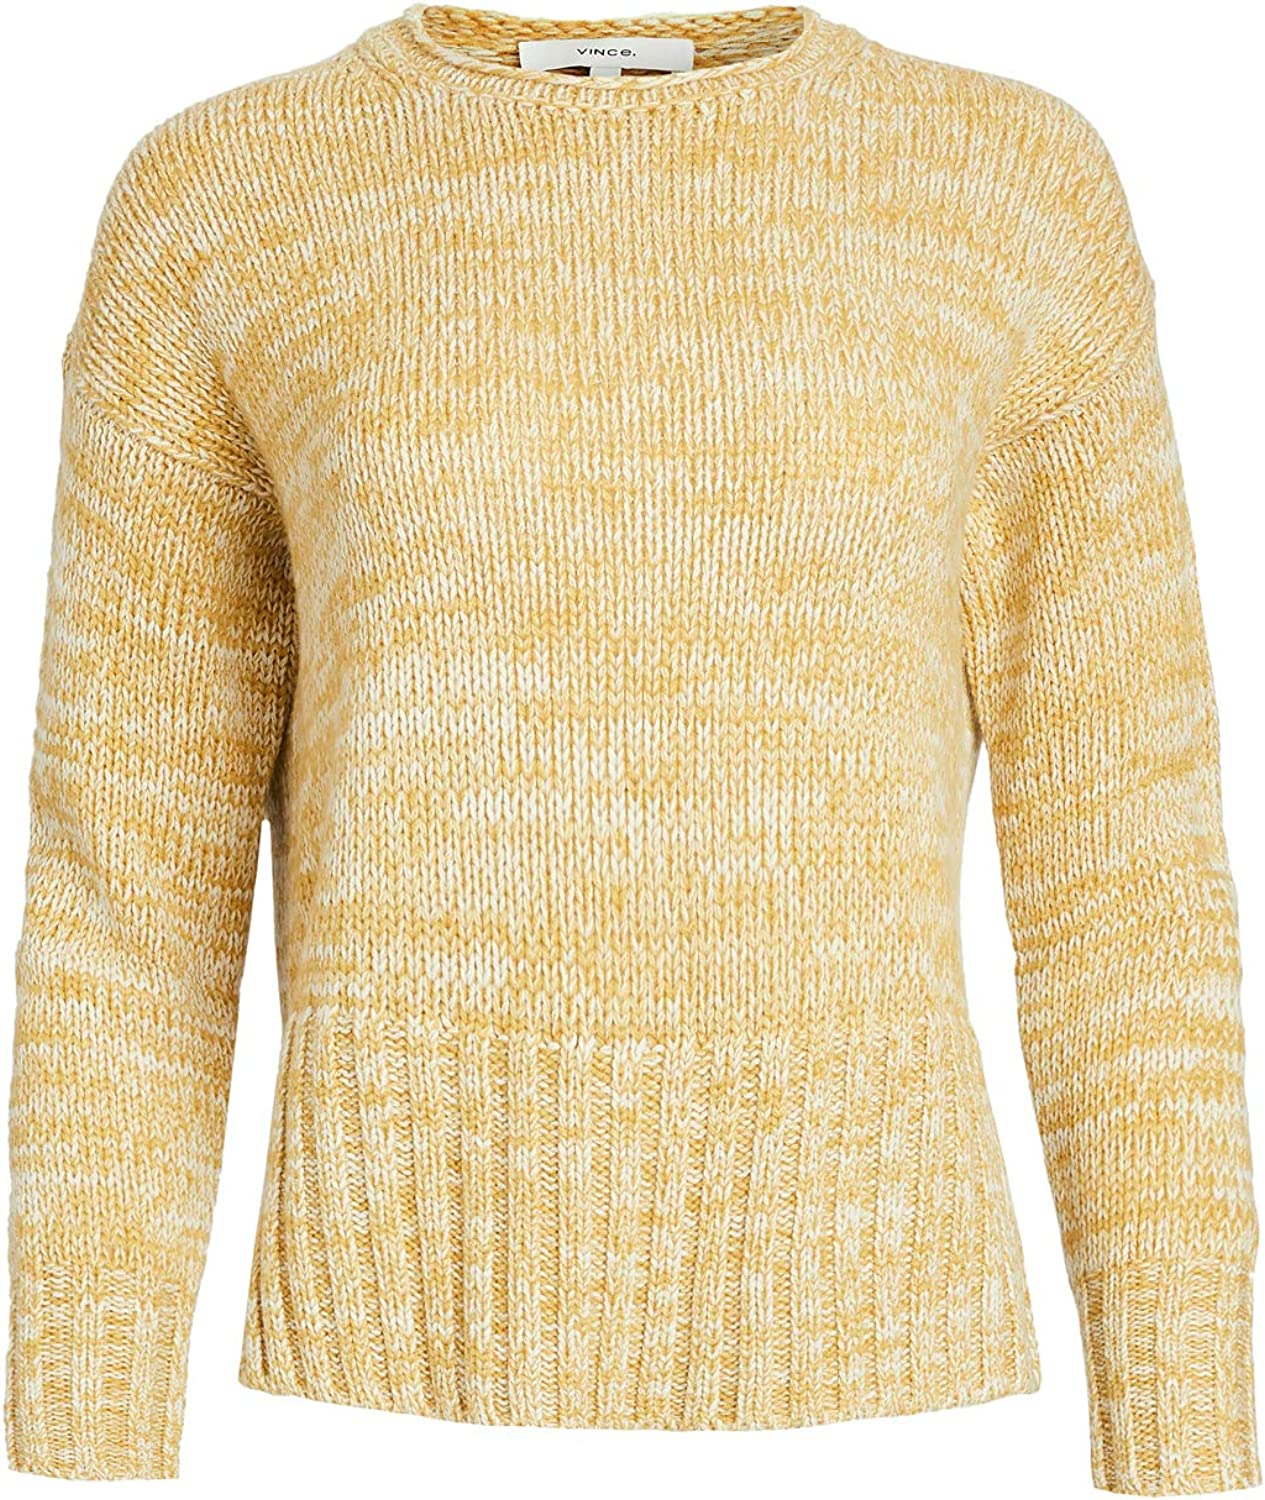 Vince Women's Marled Double Slit Crew